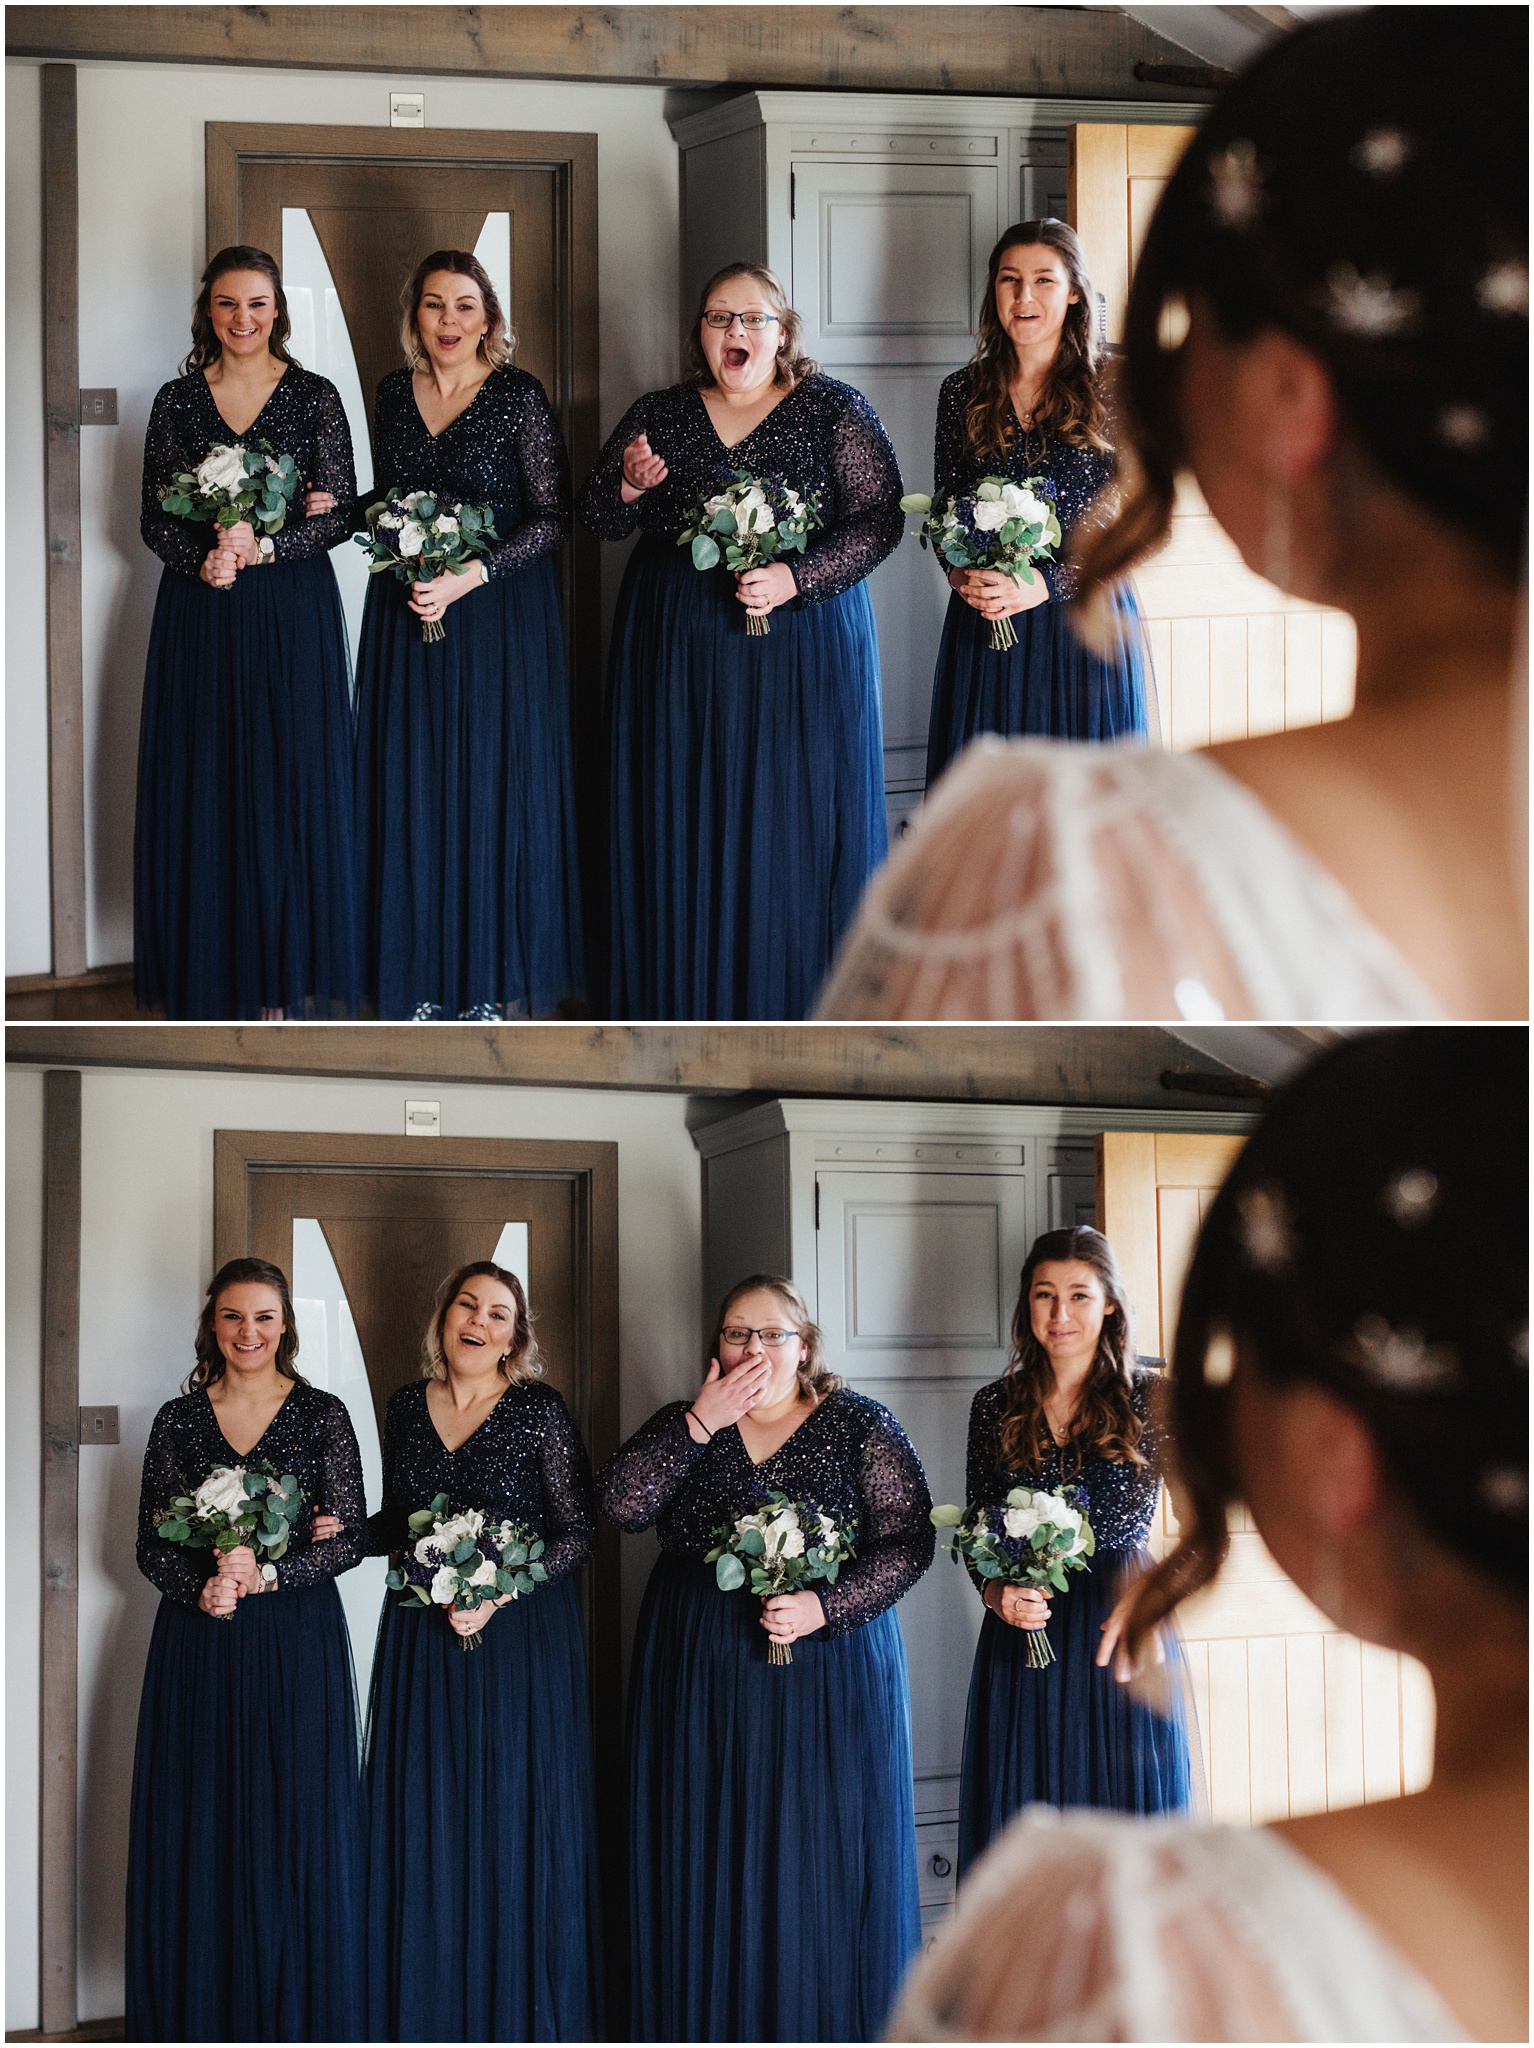 The bridesmaids react to seeing the bride in her dress for the first time